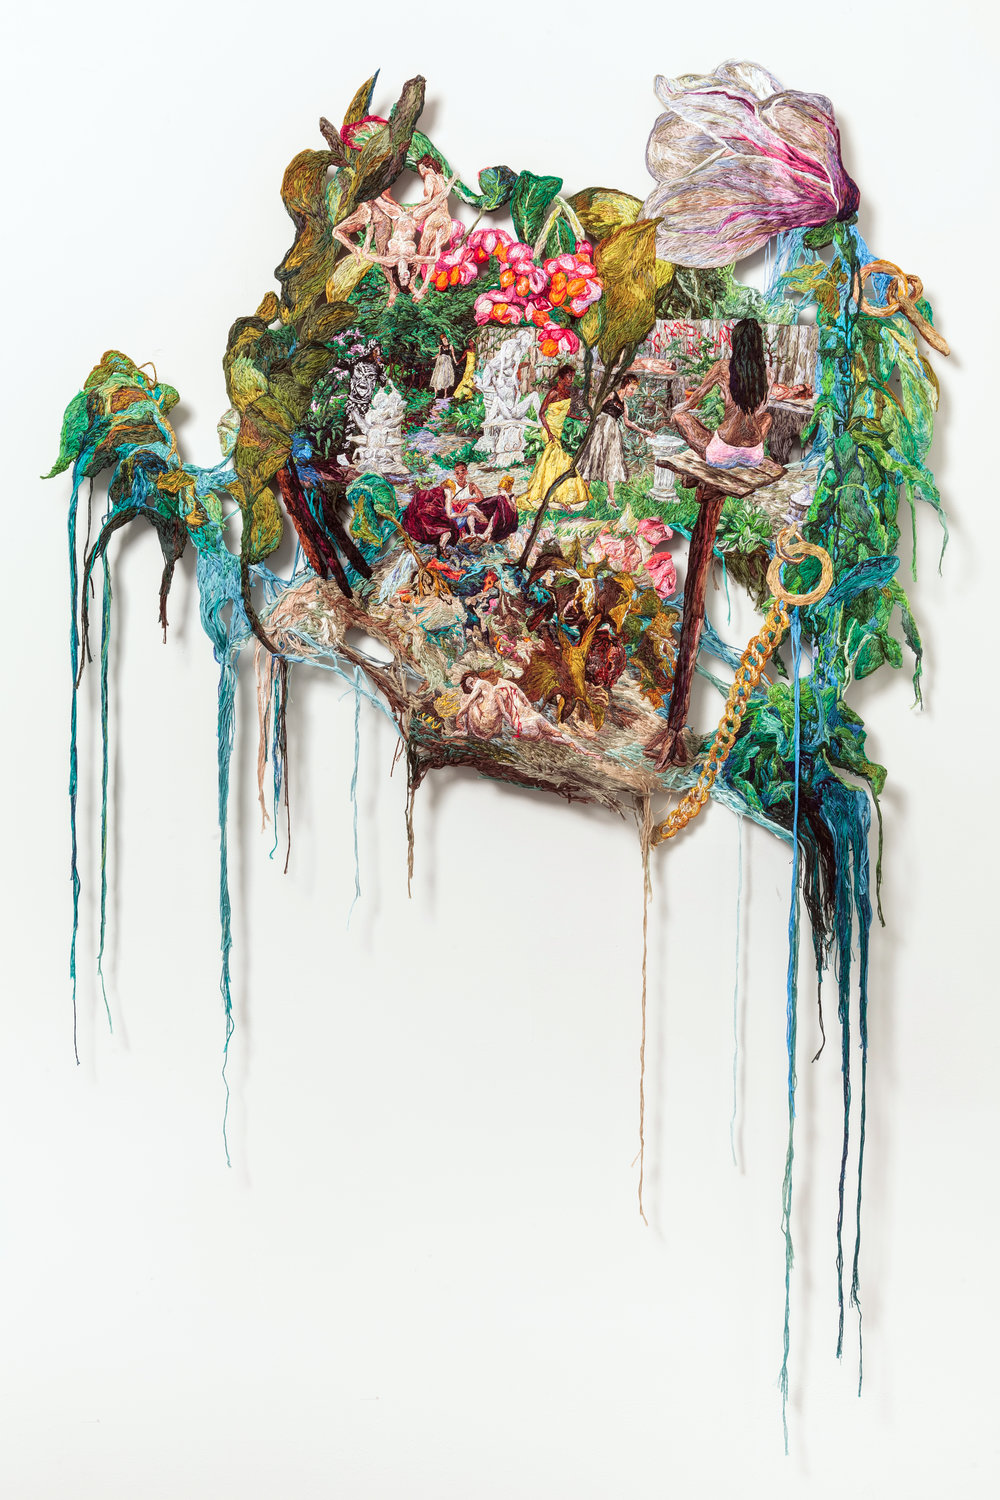 Stars Align, Sophia Narrett, 2014-15, Embroidery Thread and Fabric, 33 x 48 in.jpg